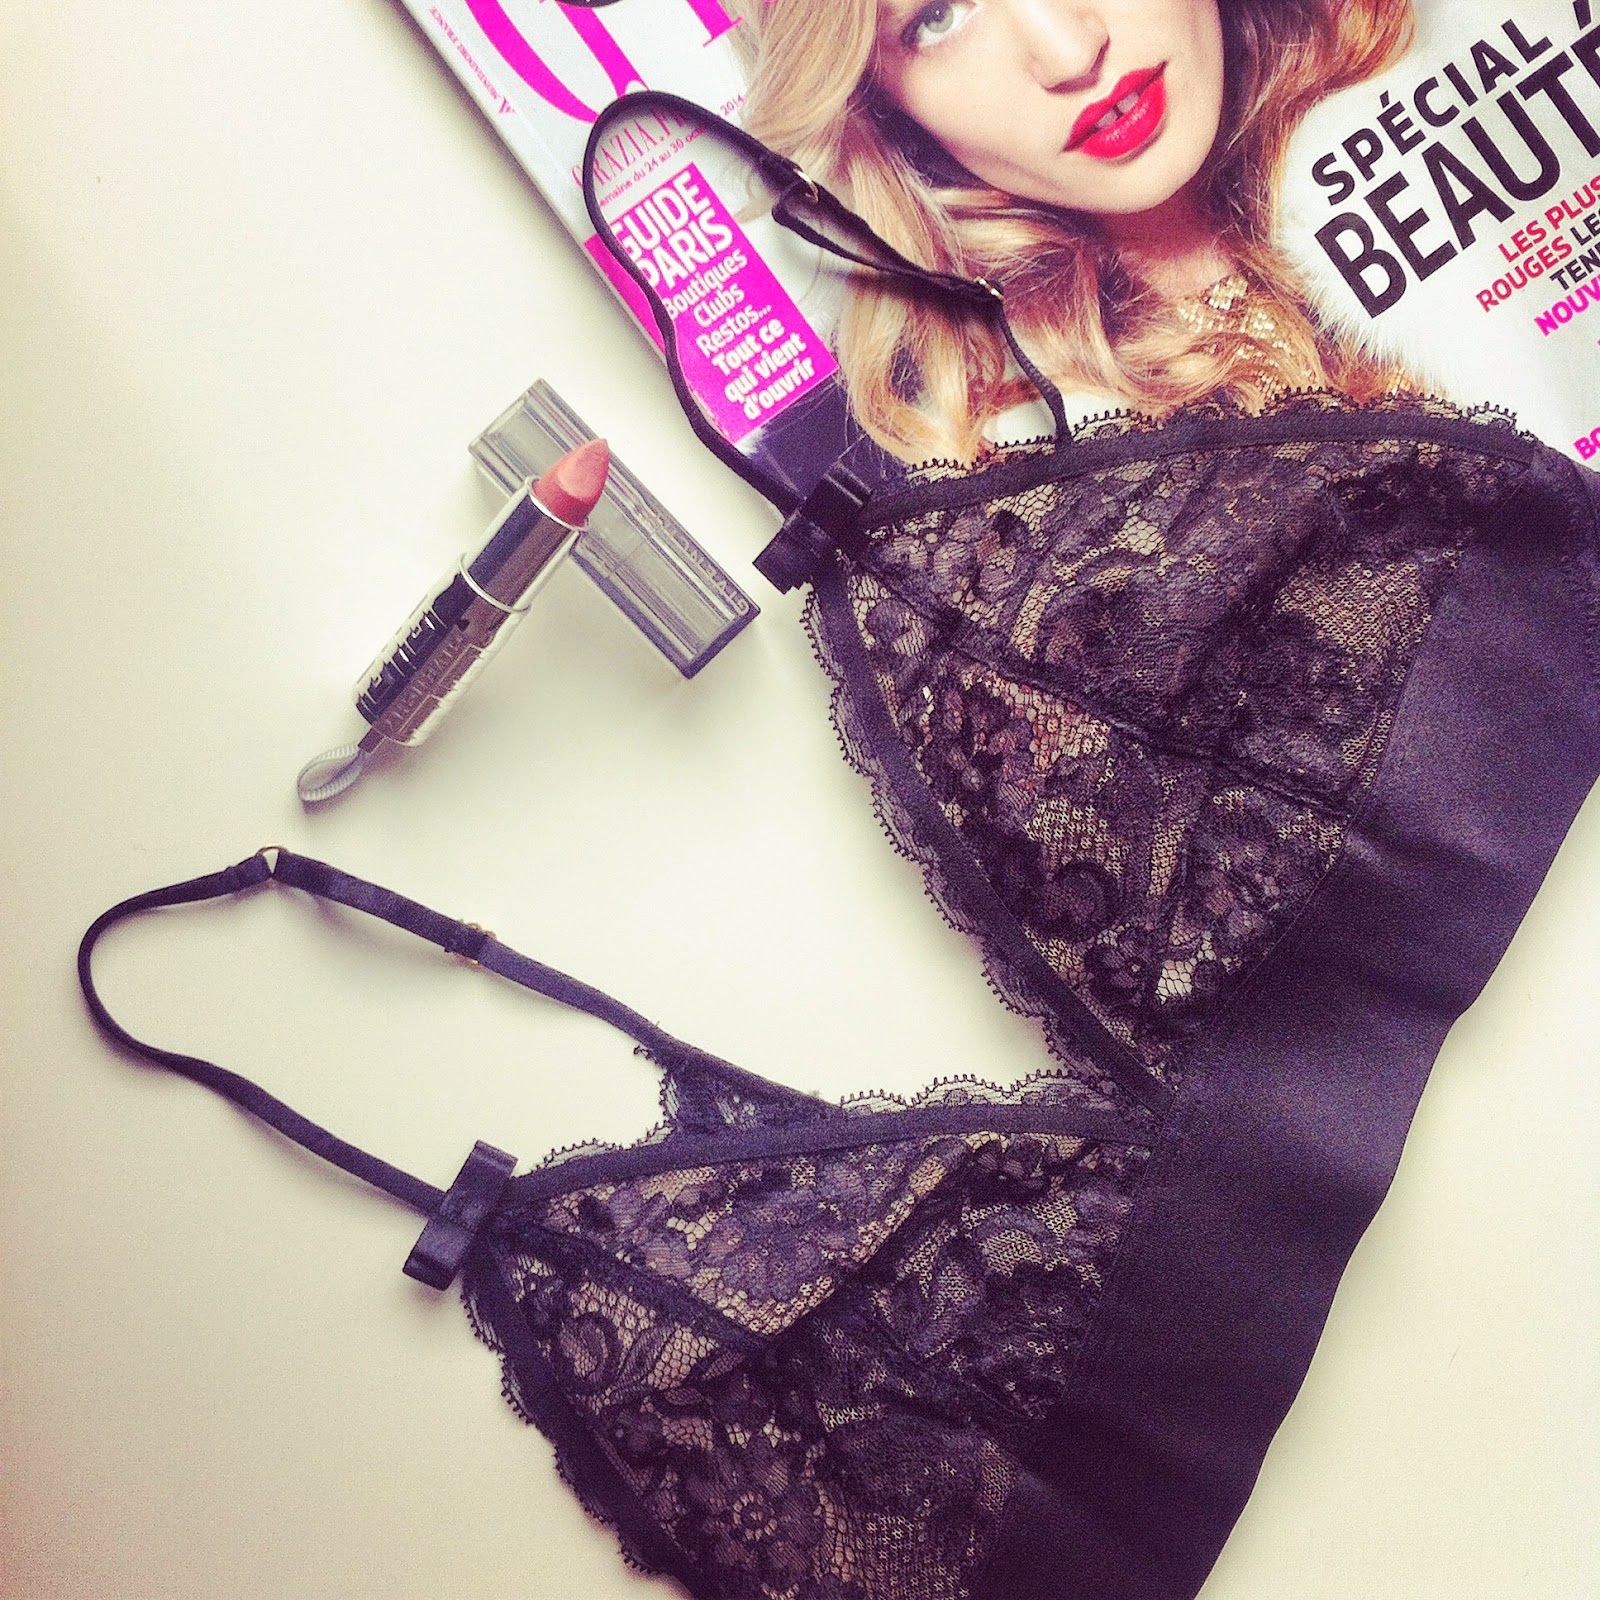 http://www.choupieandco.com/2014/11/obsession-lingerie.html